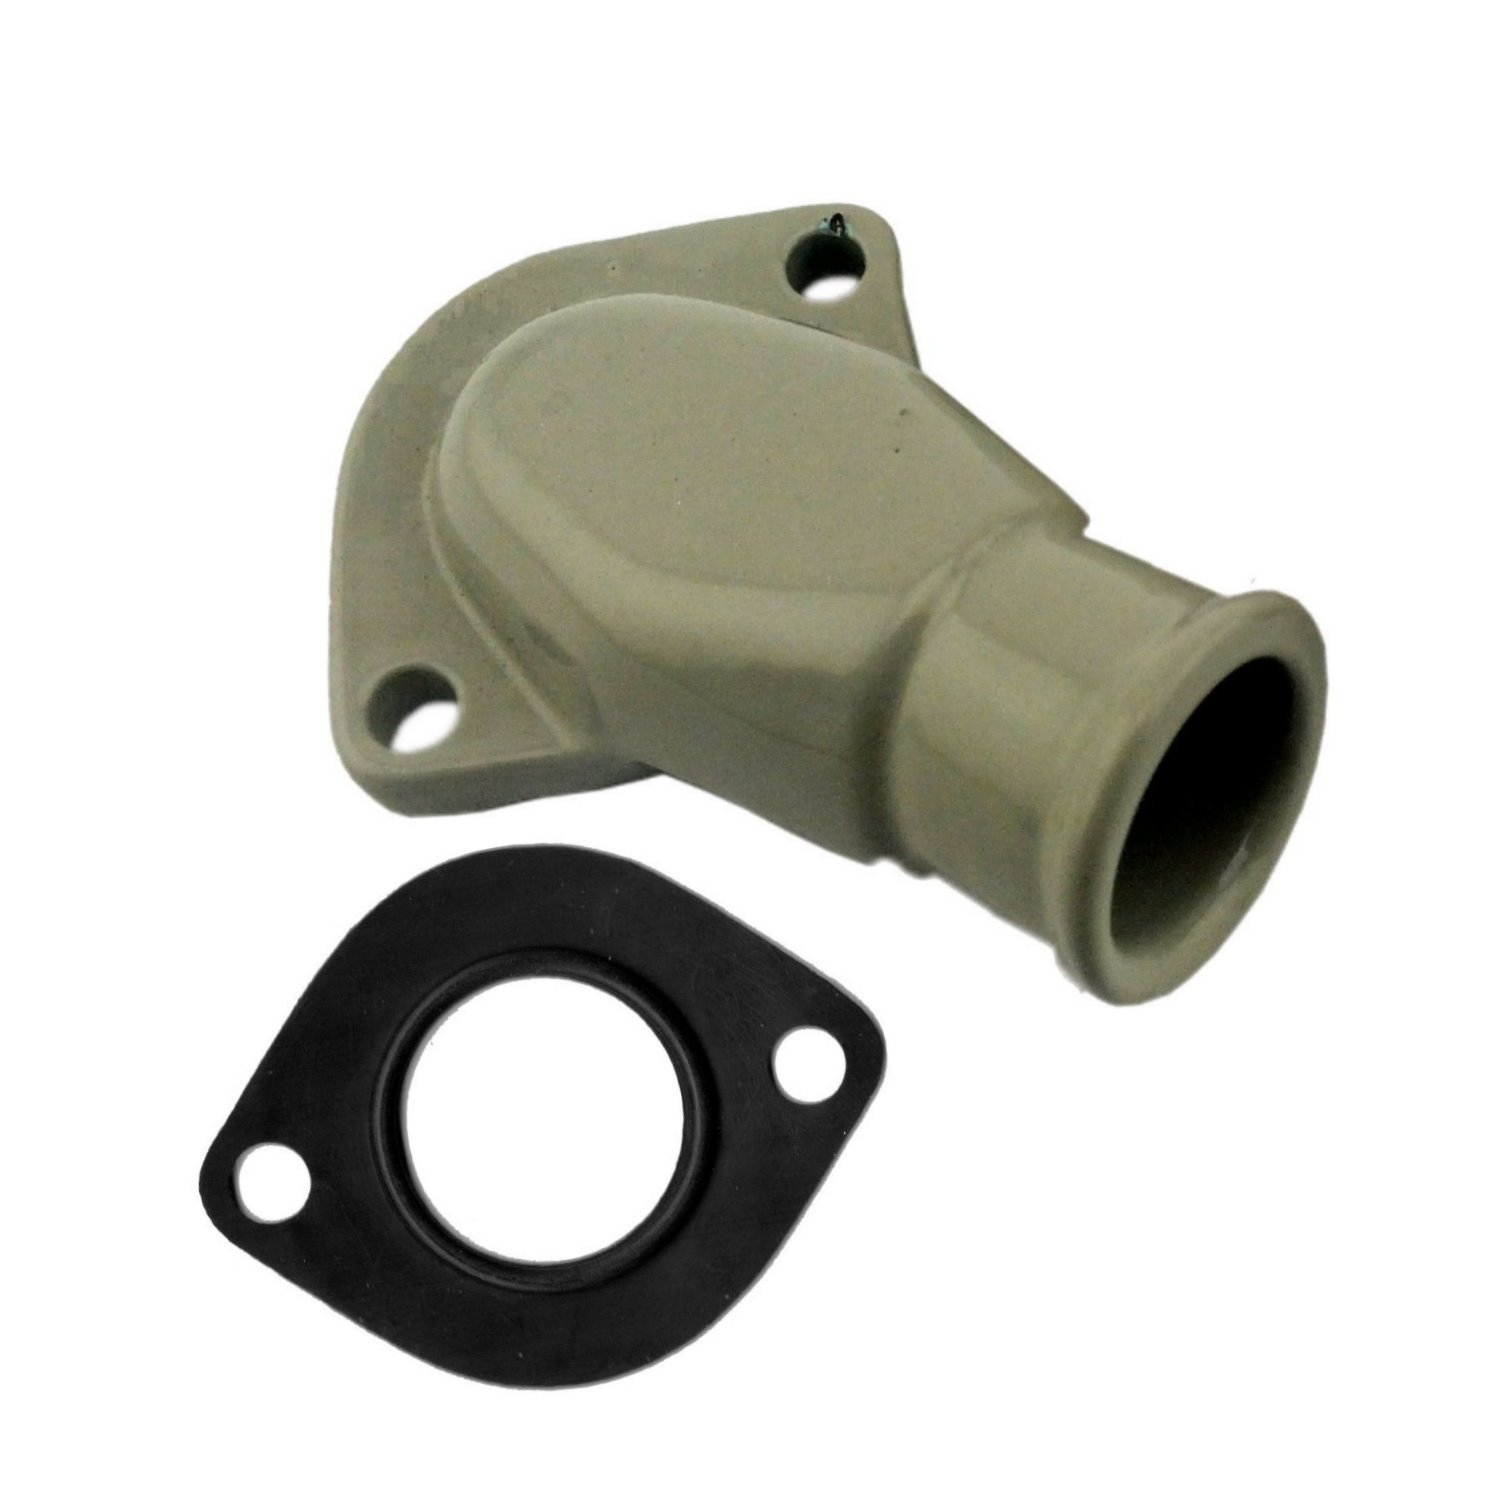 Boat Propeller For VOLVO PENTA Sterndrives, Water Hose Connection with Seal 832846, 814356, fits AQ 140-290 Engine